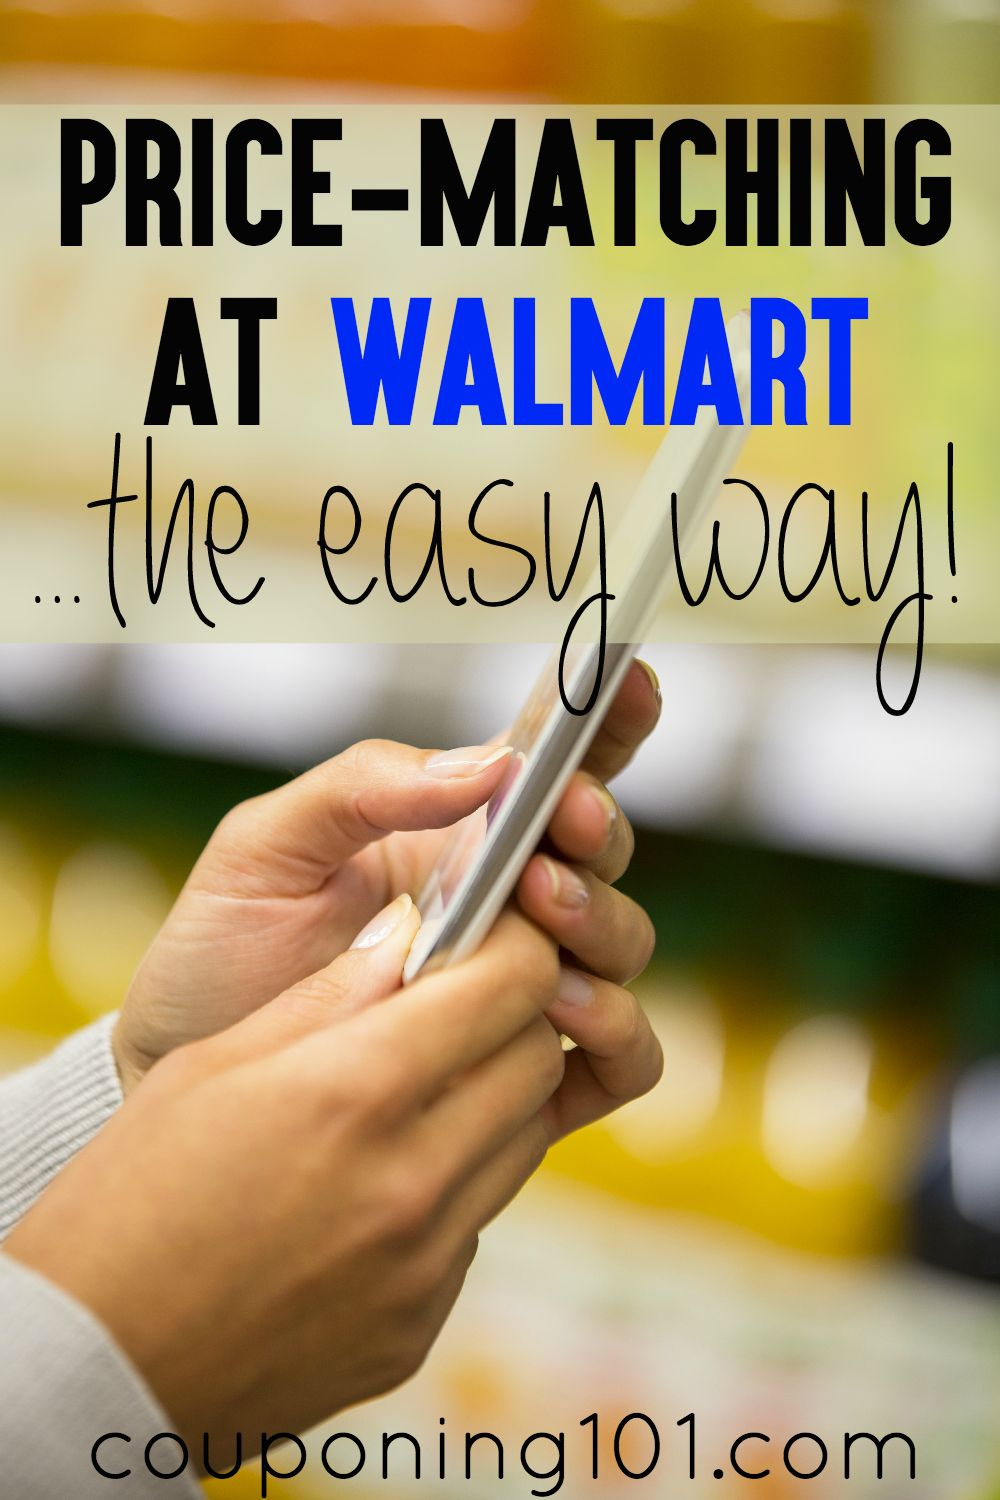 Walmart Savings Catcher PriceMatching App Price